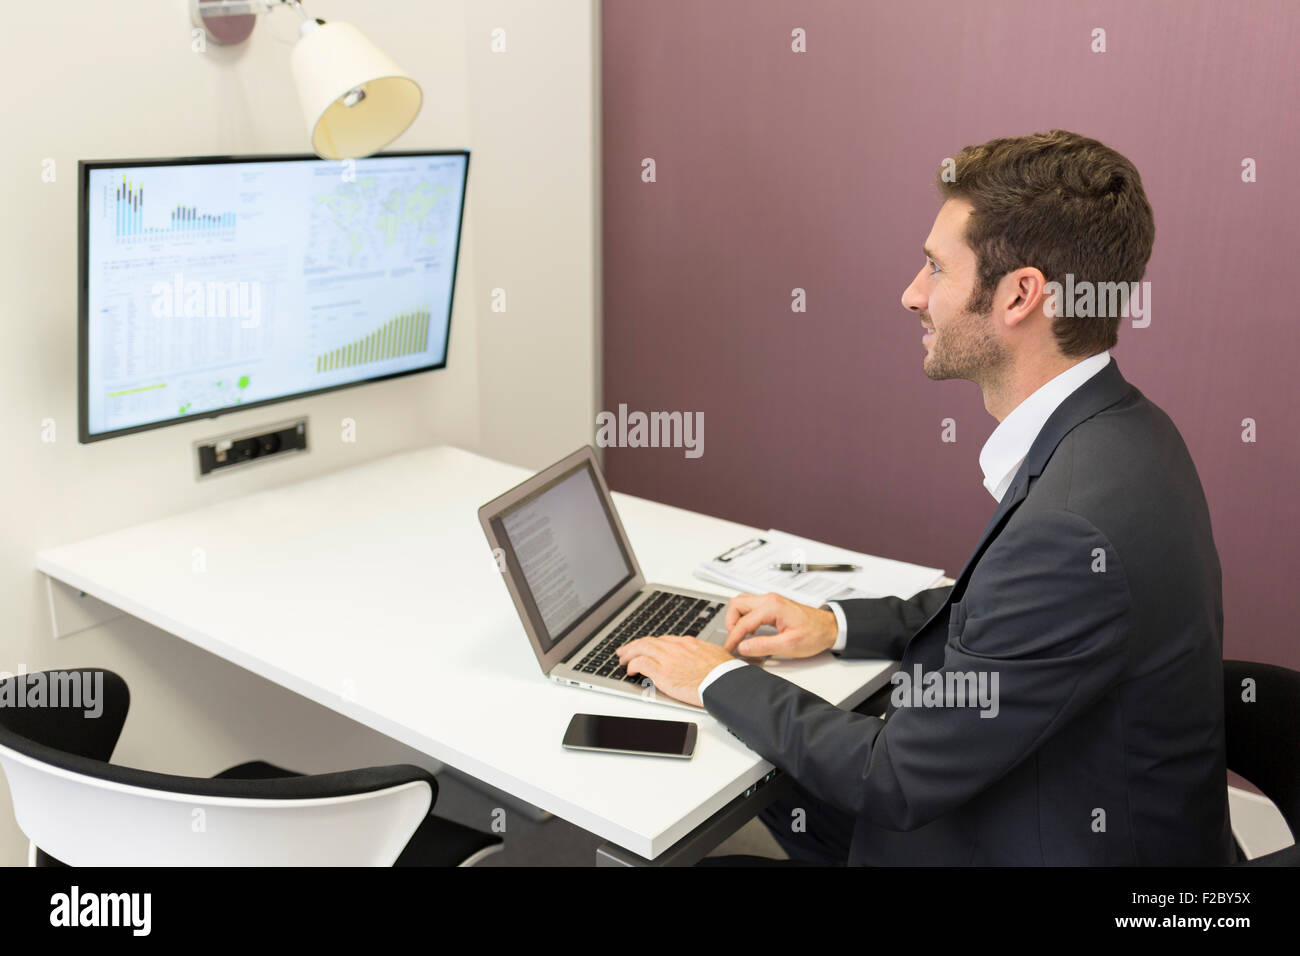 Businessman using laptop working in conference room Banque D'Images